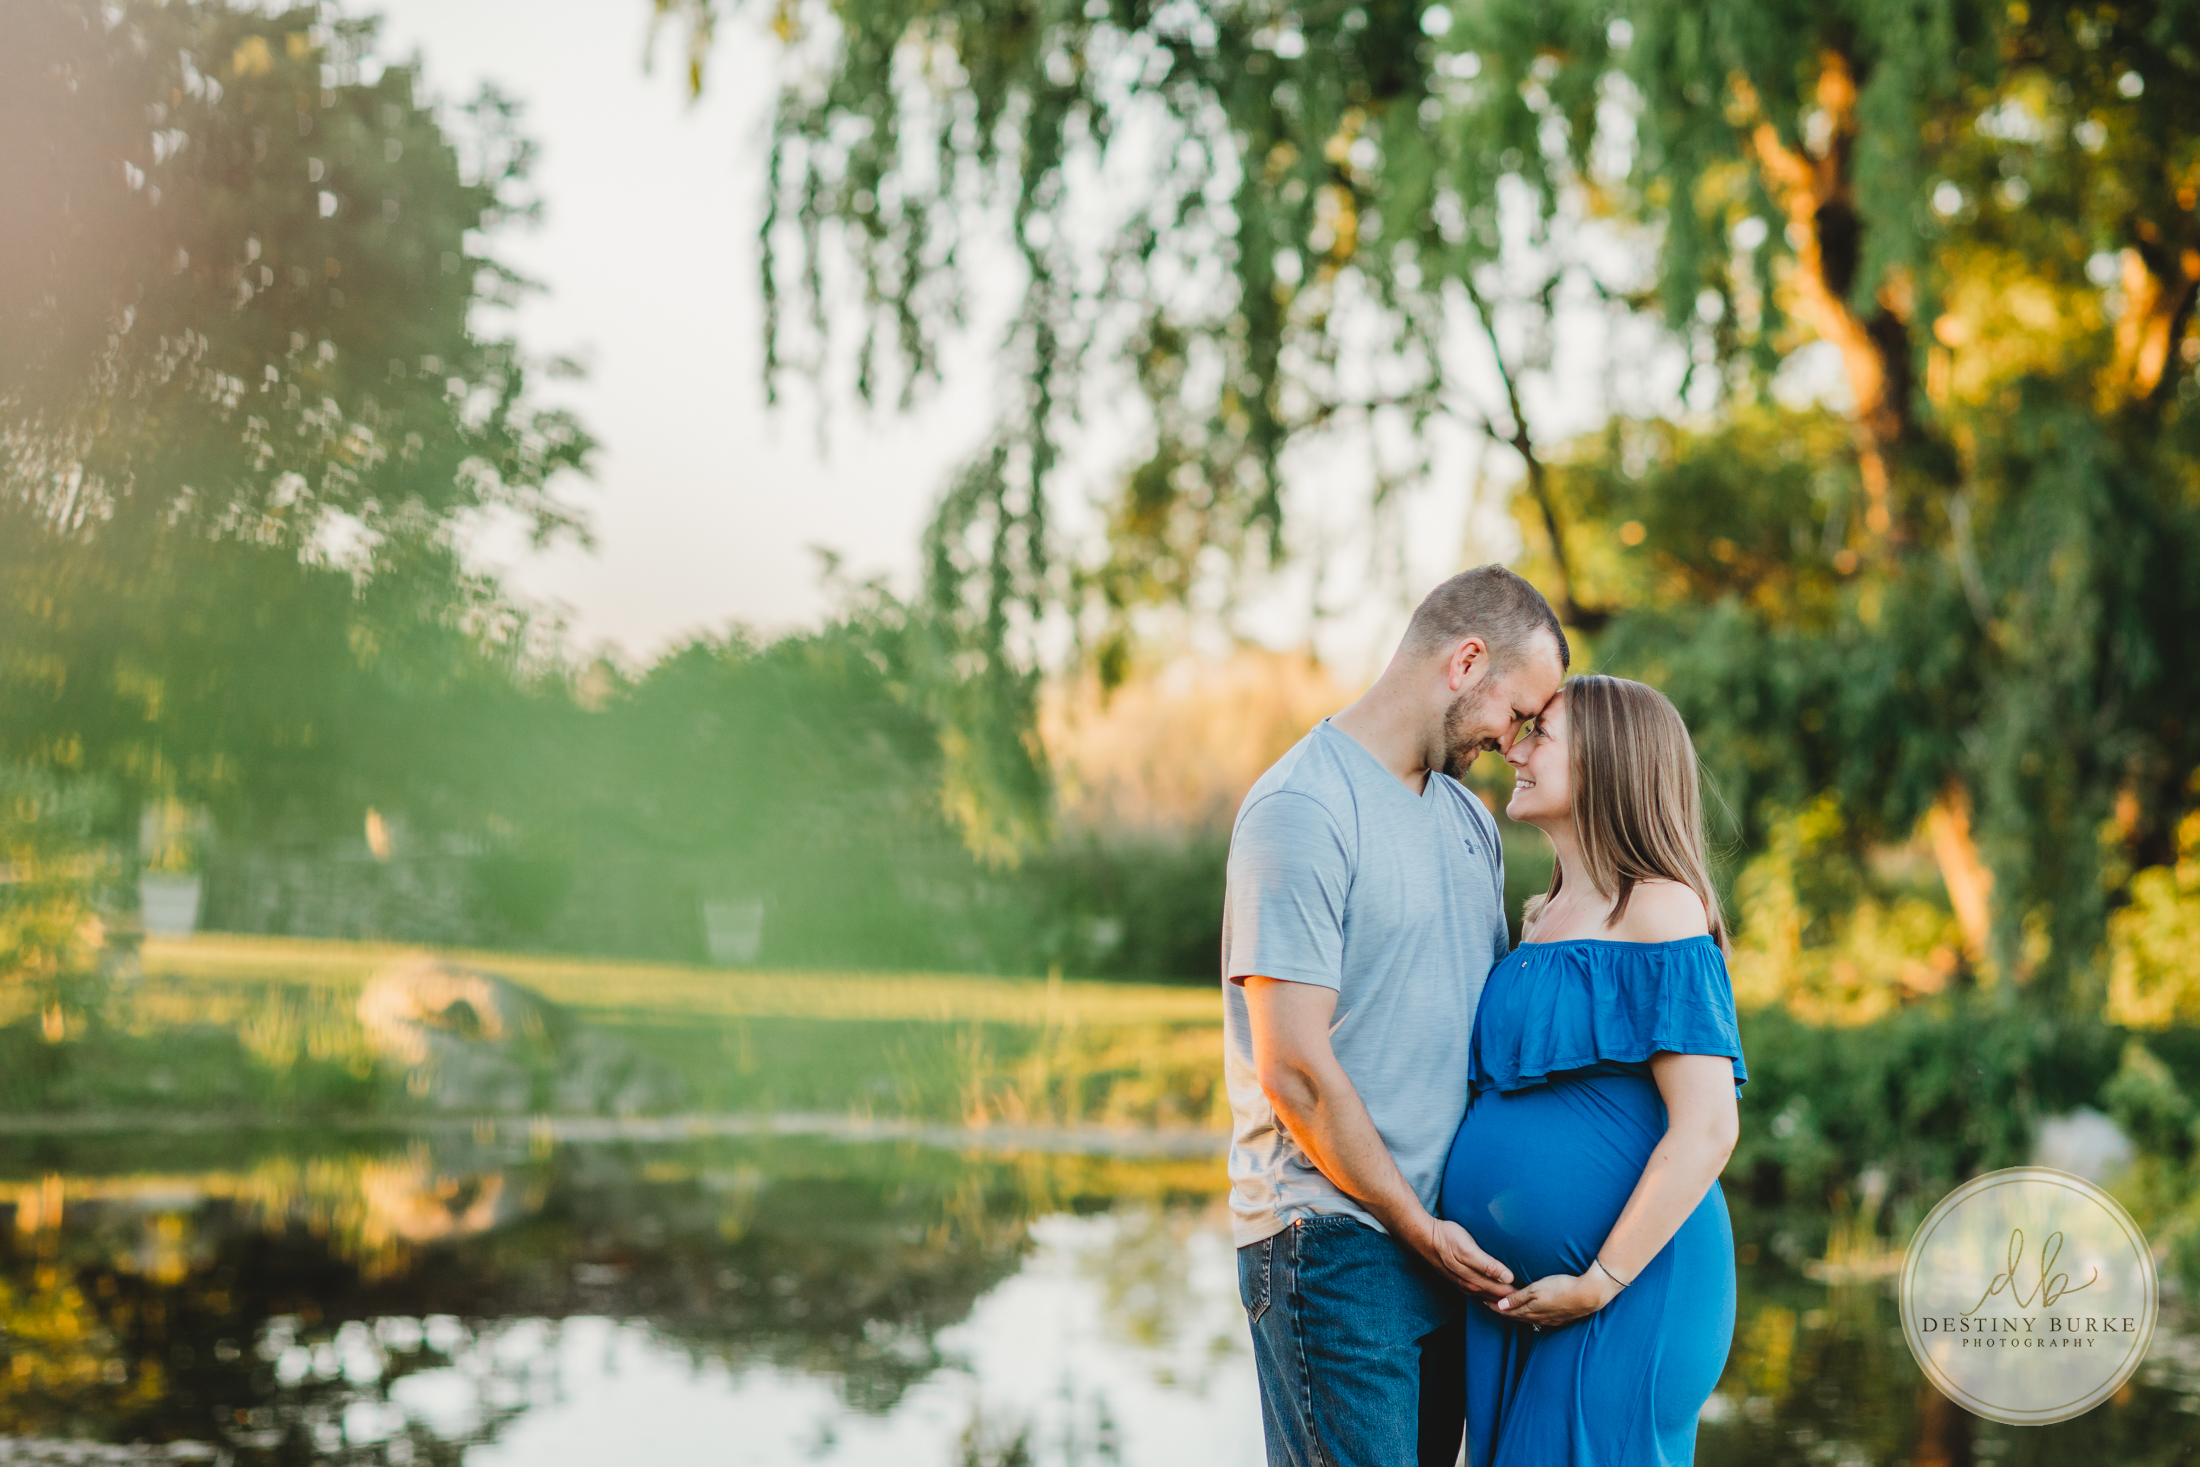 pregnancy, Maternity, Session, Couples, posing, foreground